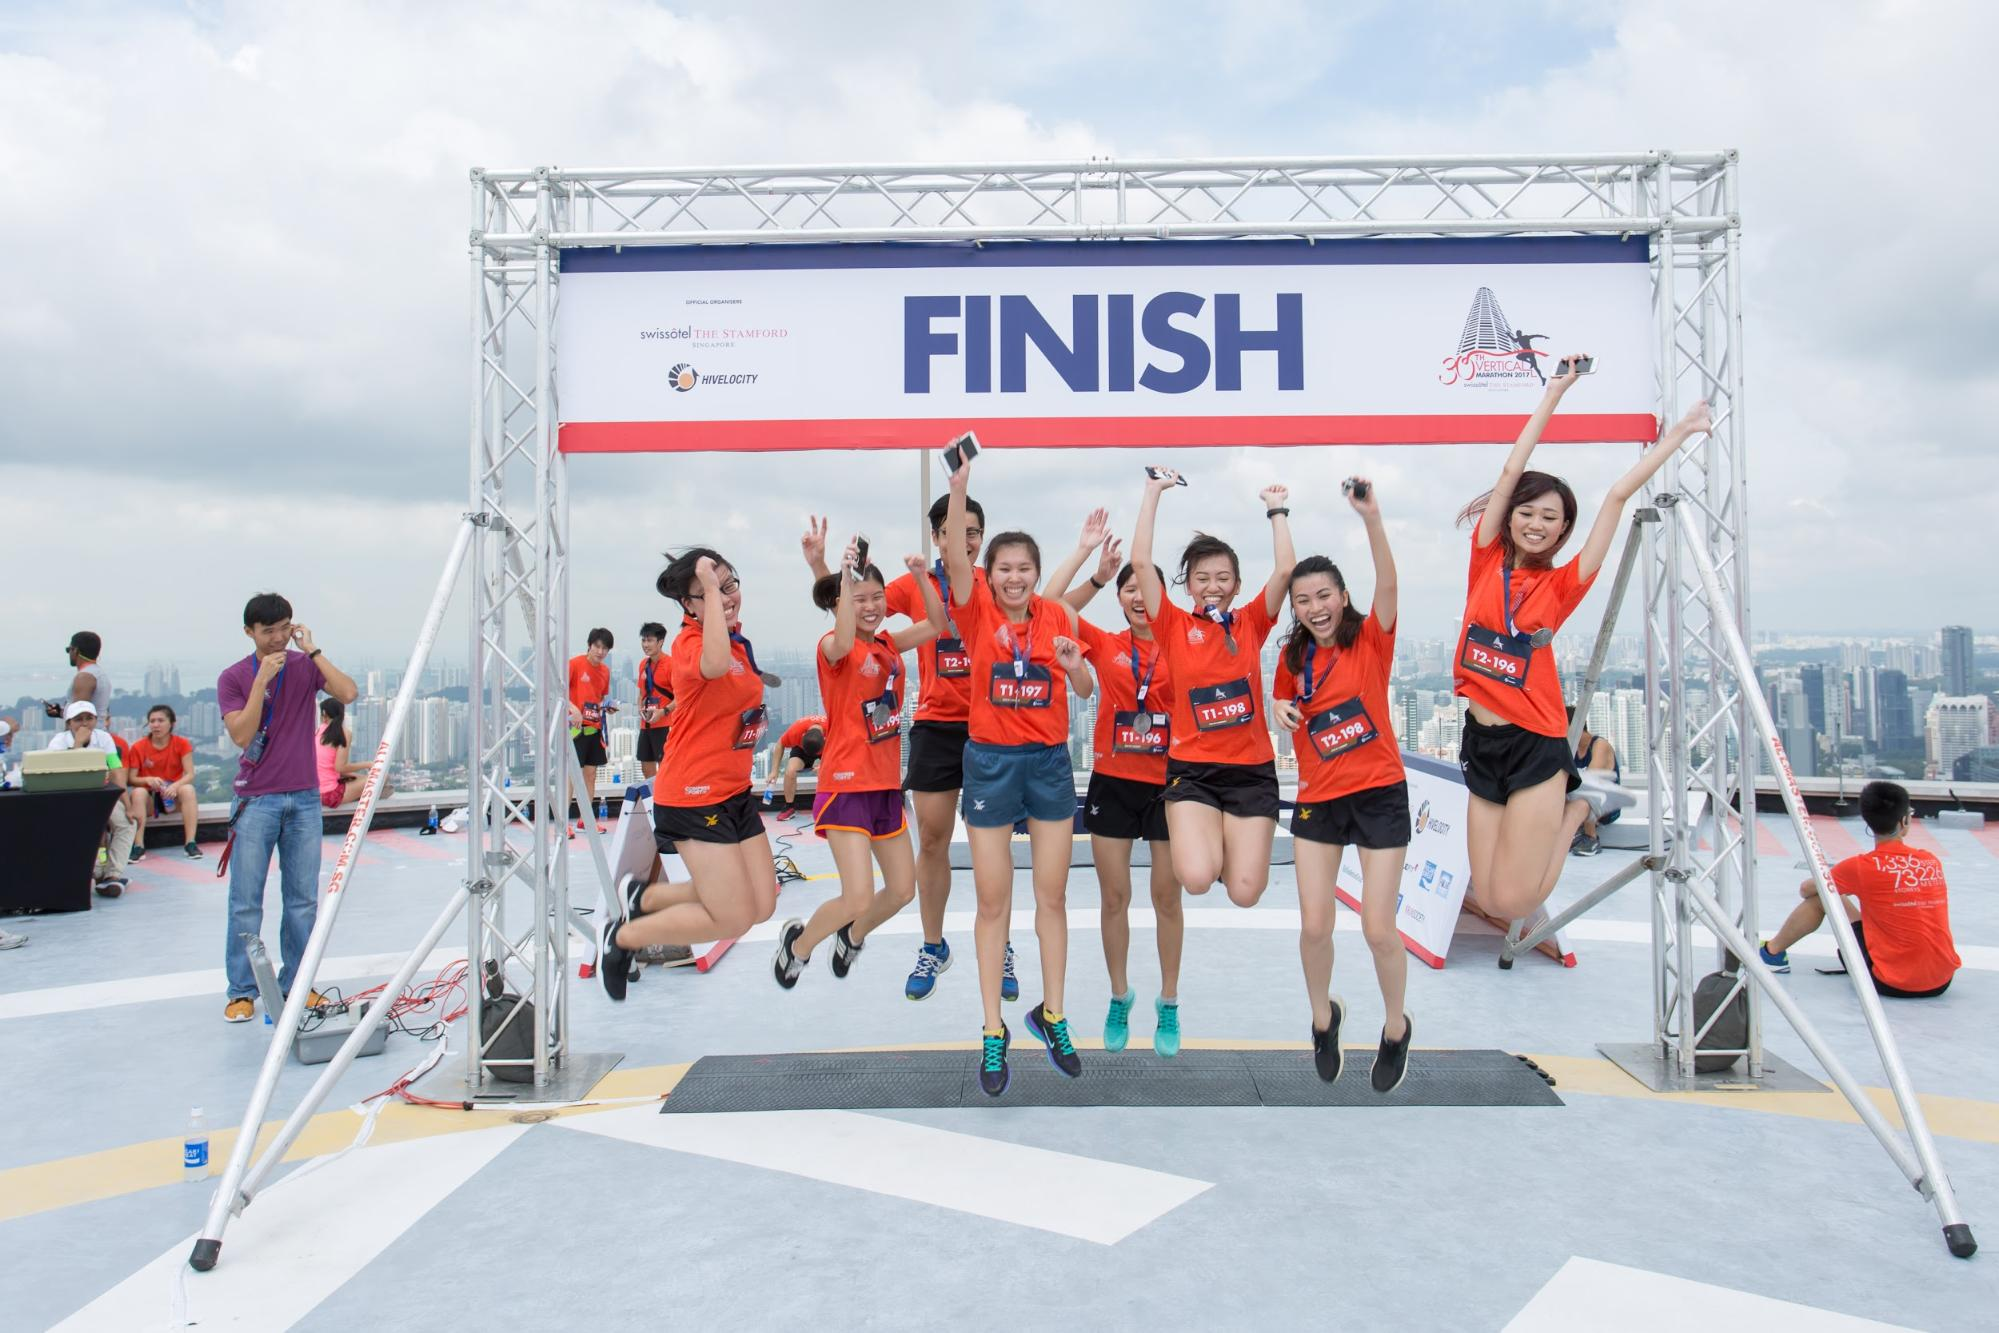 vertical marathon swissotel the stamford 2018 - finish line winners